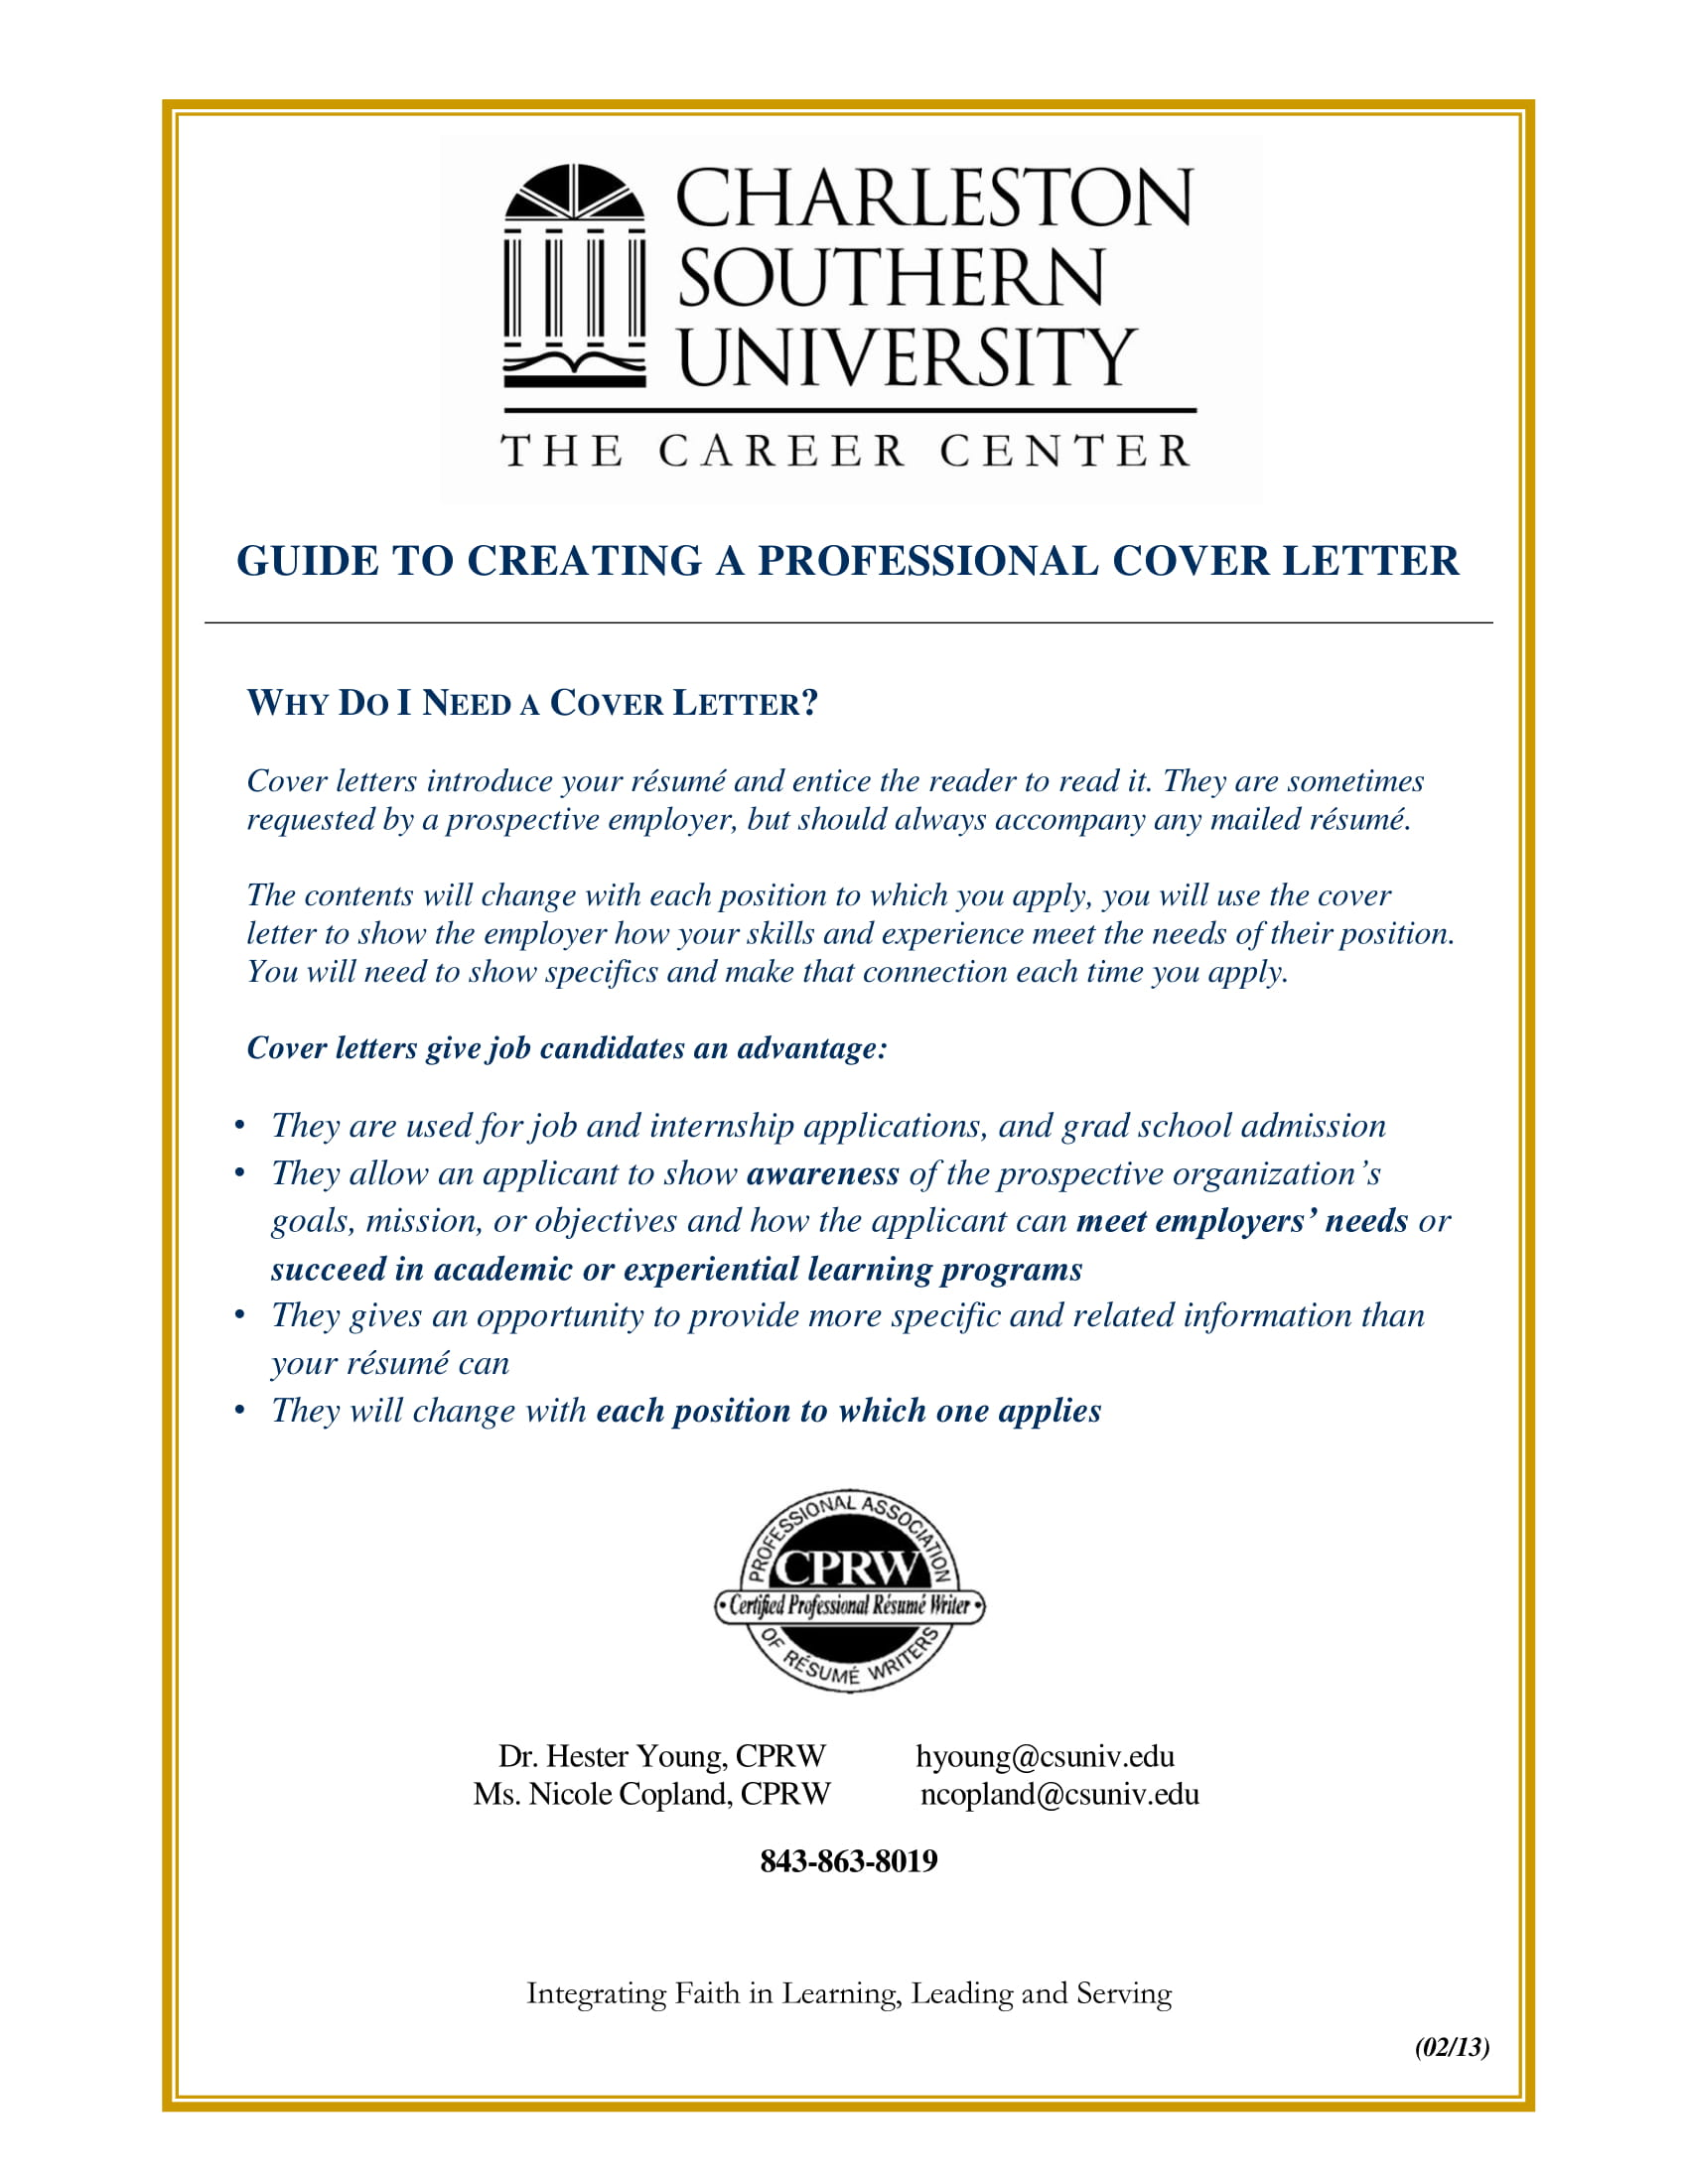 cover letter guide 01